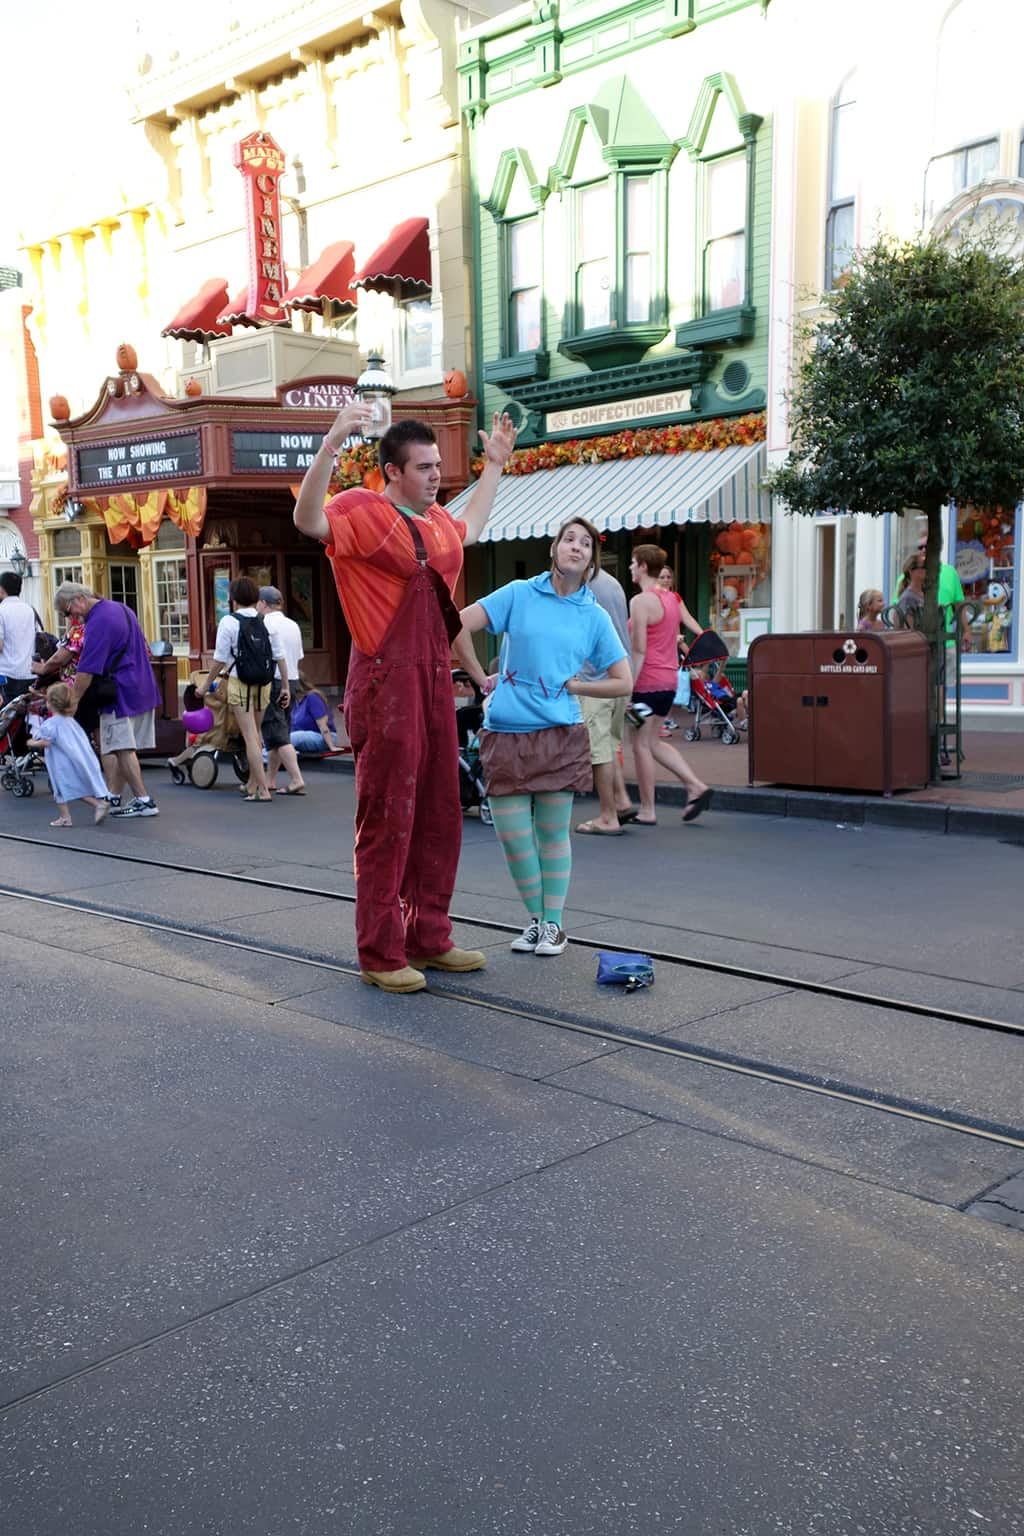 Wreck it Ralph and Vanellope were popular costumes this year.